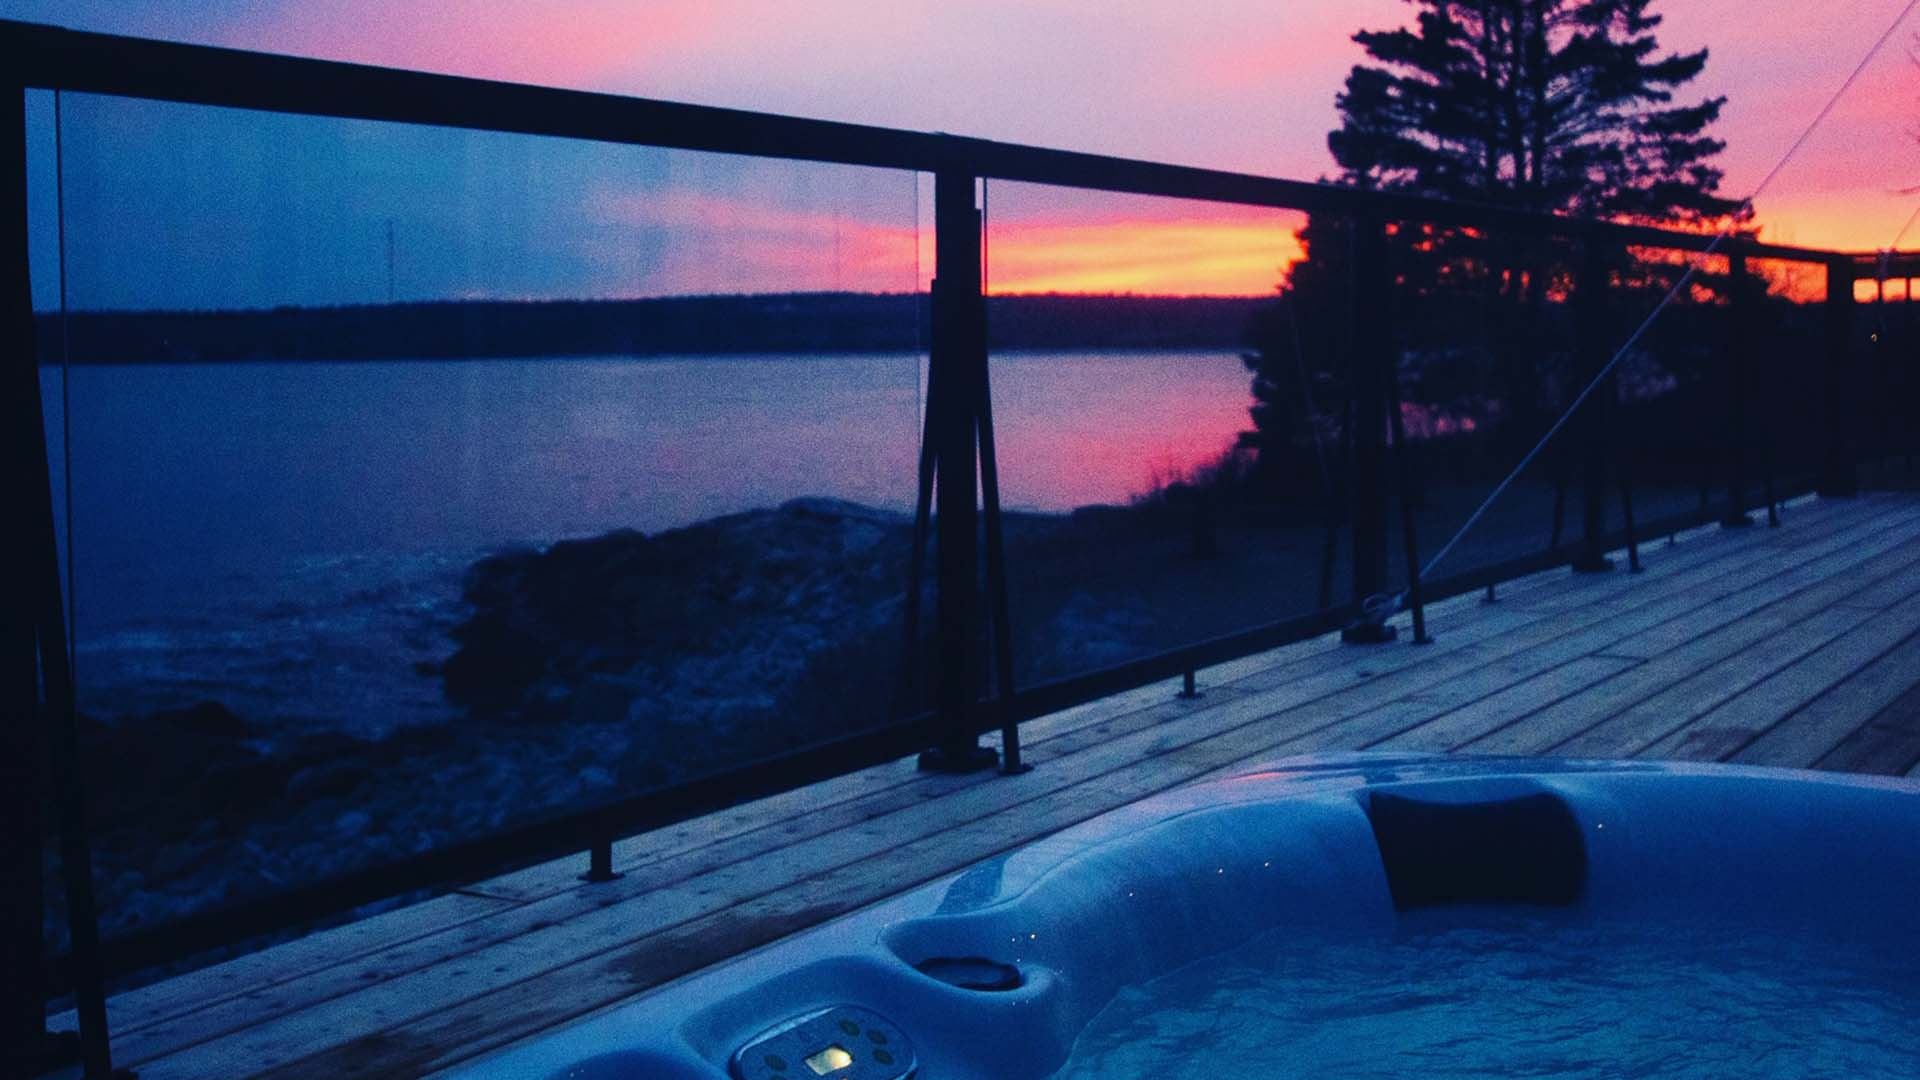 Nova Scotia Winter Getaways With An Outdoor Hot Tub Tourism Nova Scotia Canada